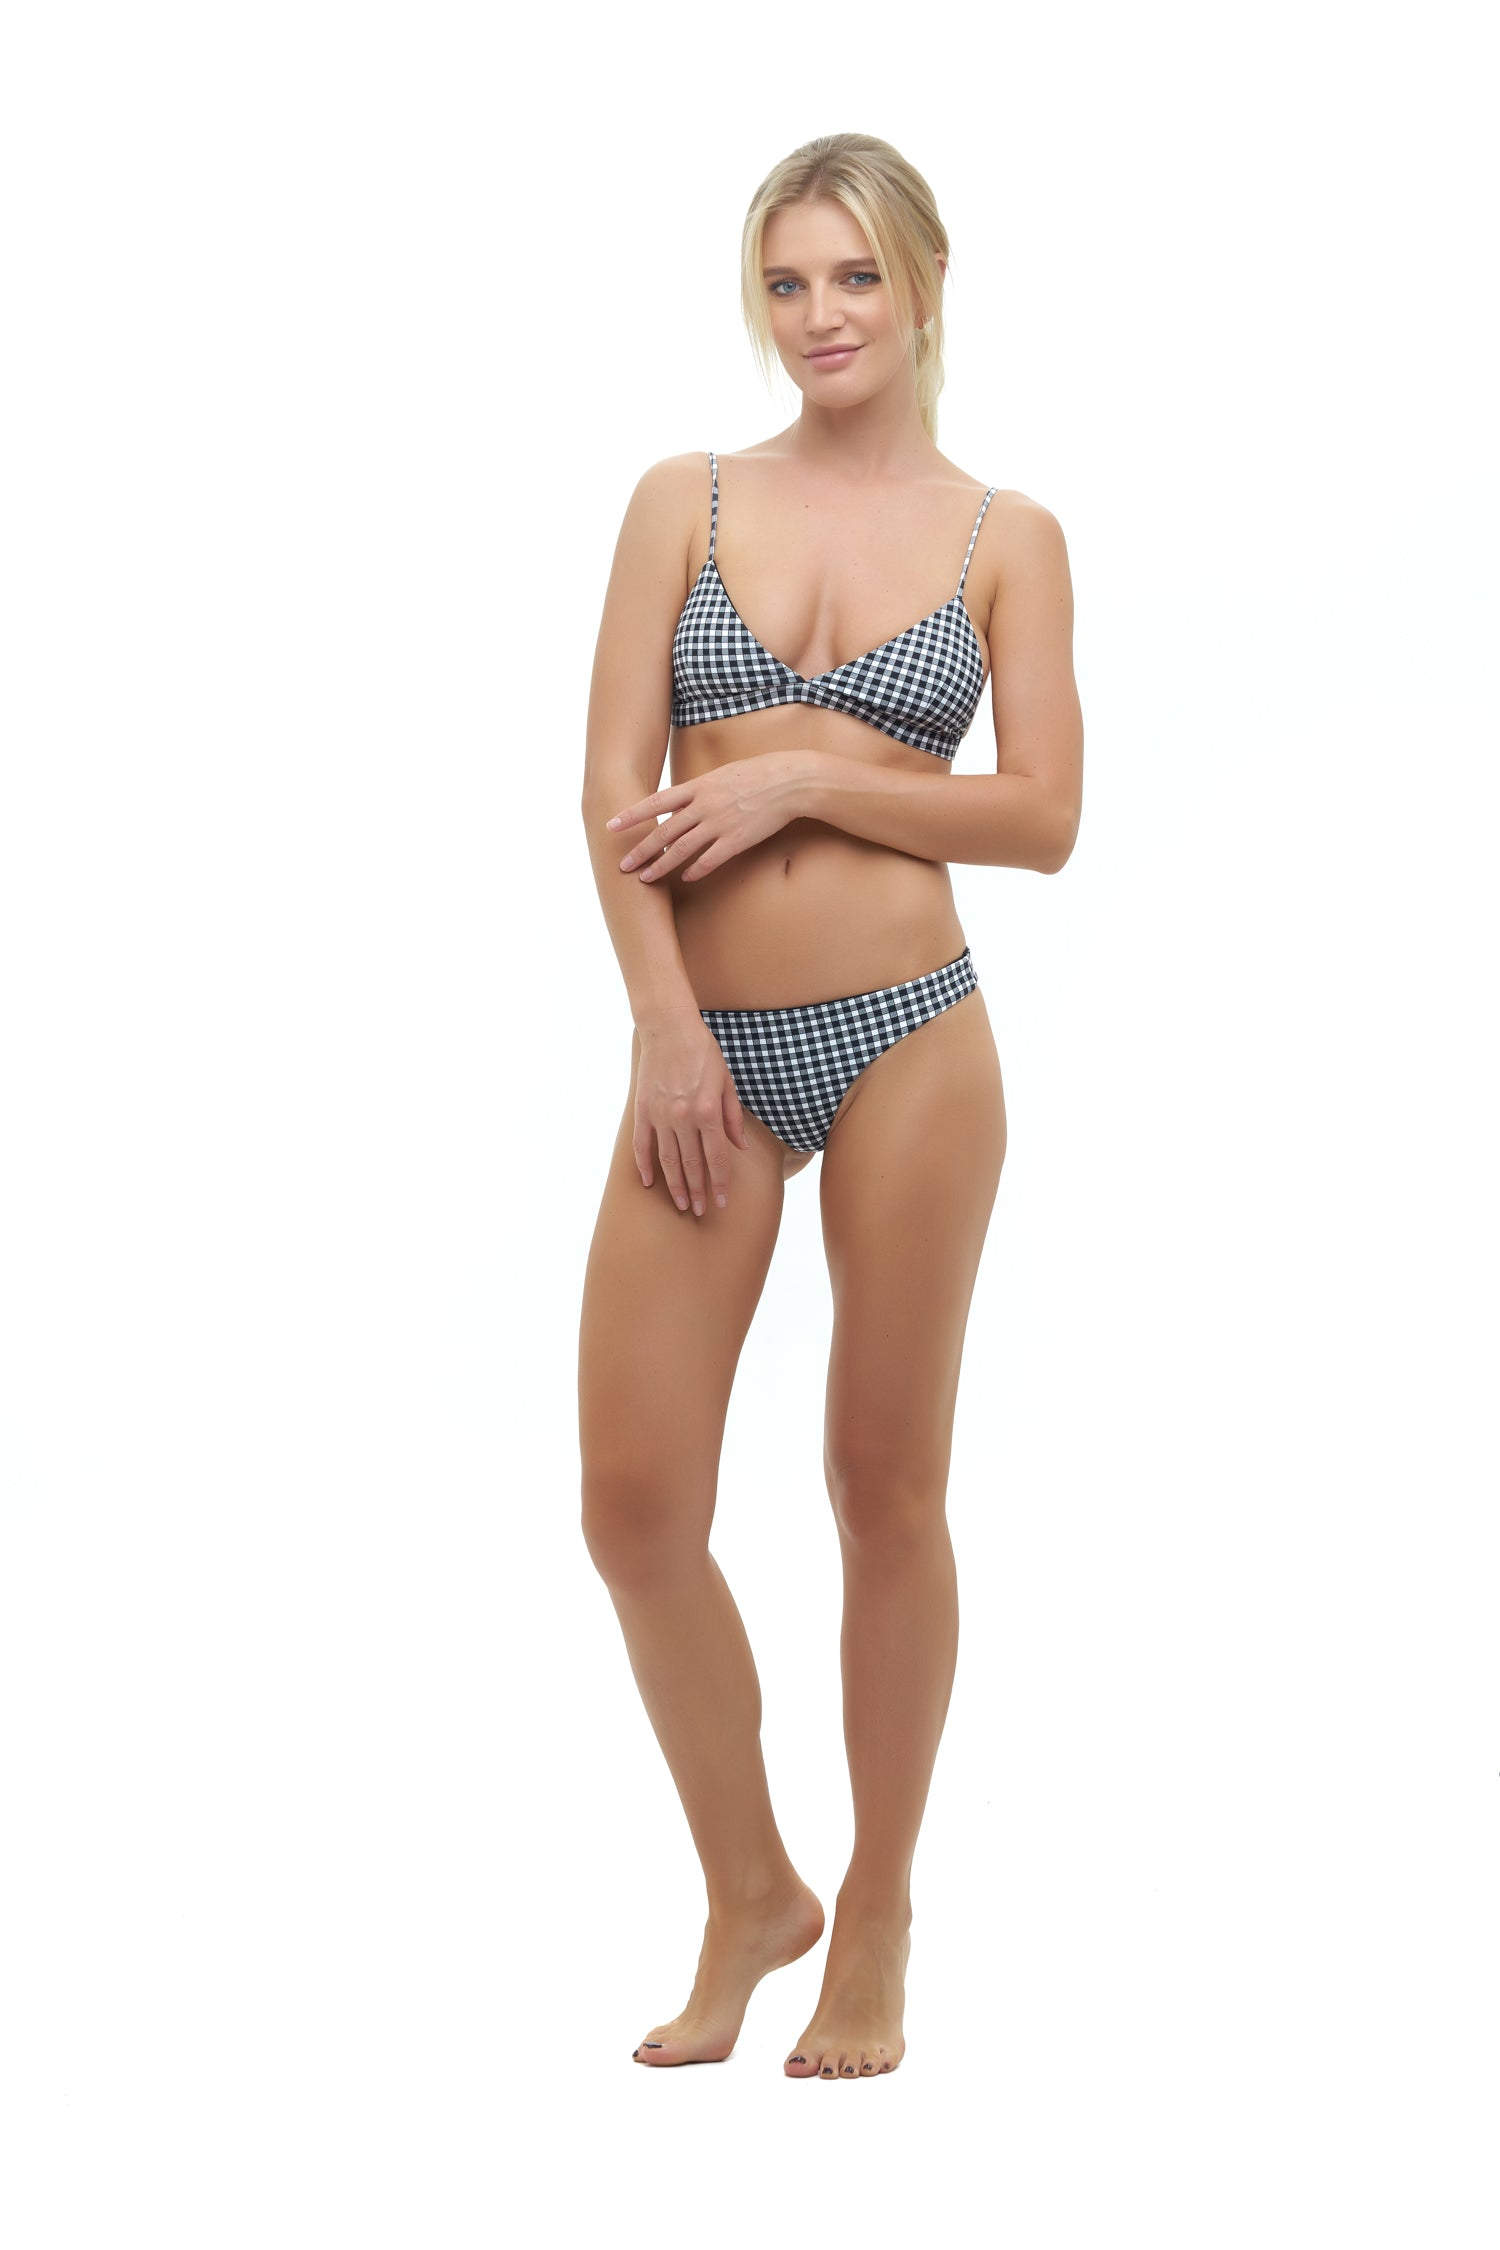 Storm Swimwear - Mallorca - Triangle Bikini Top with Paded In Gingham Black and White Check